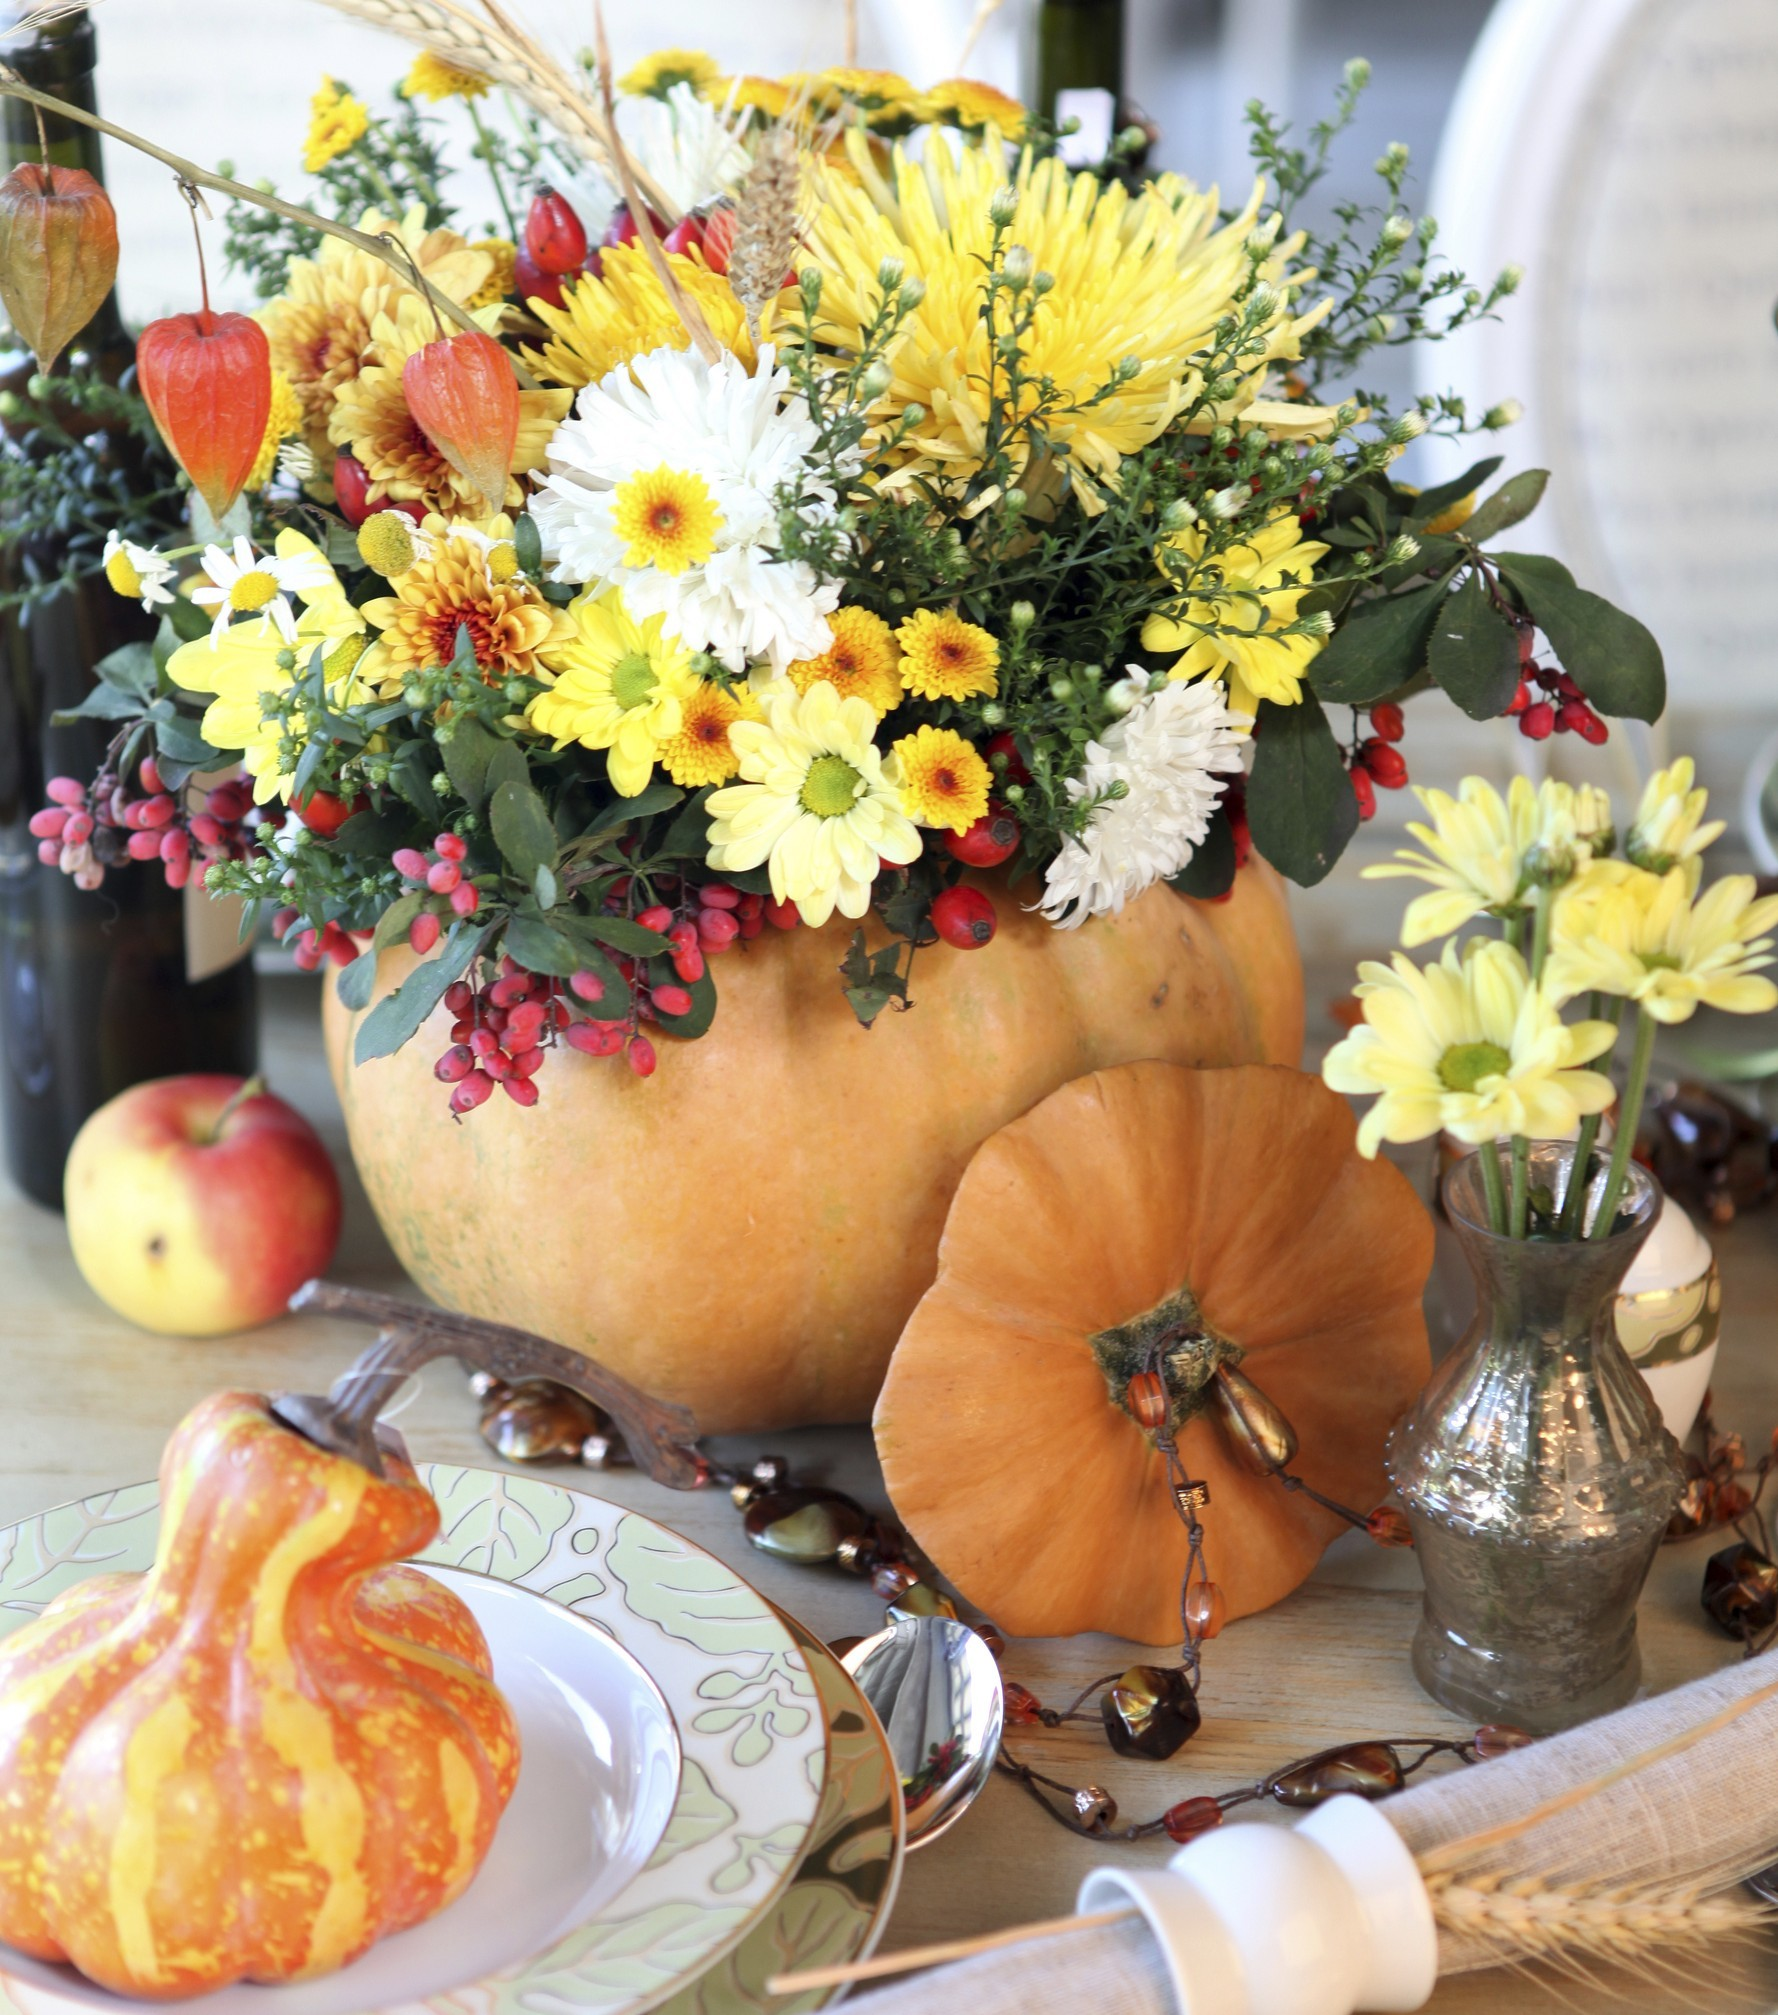 Pumpkin filled with cut flowers used as a centerpiece.